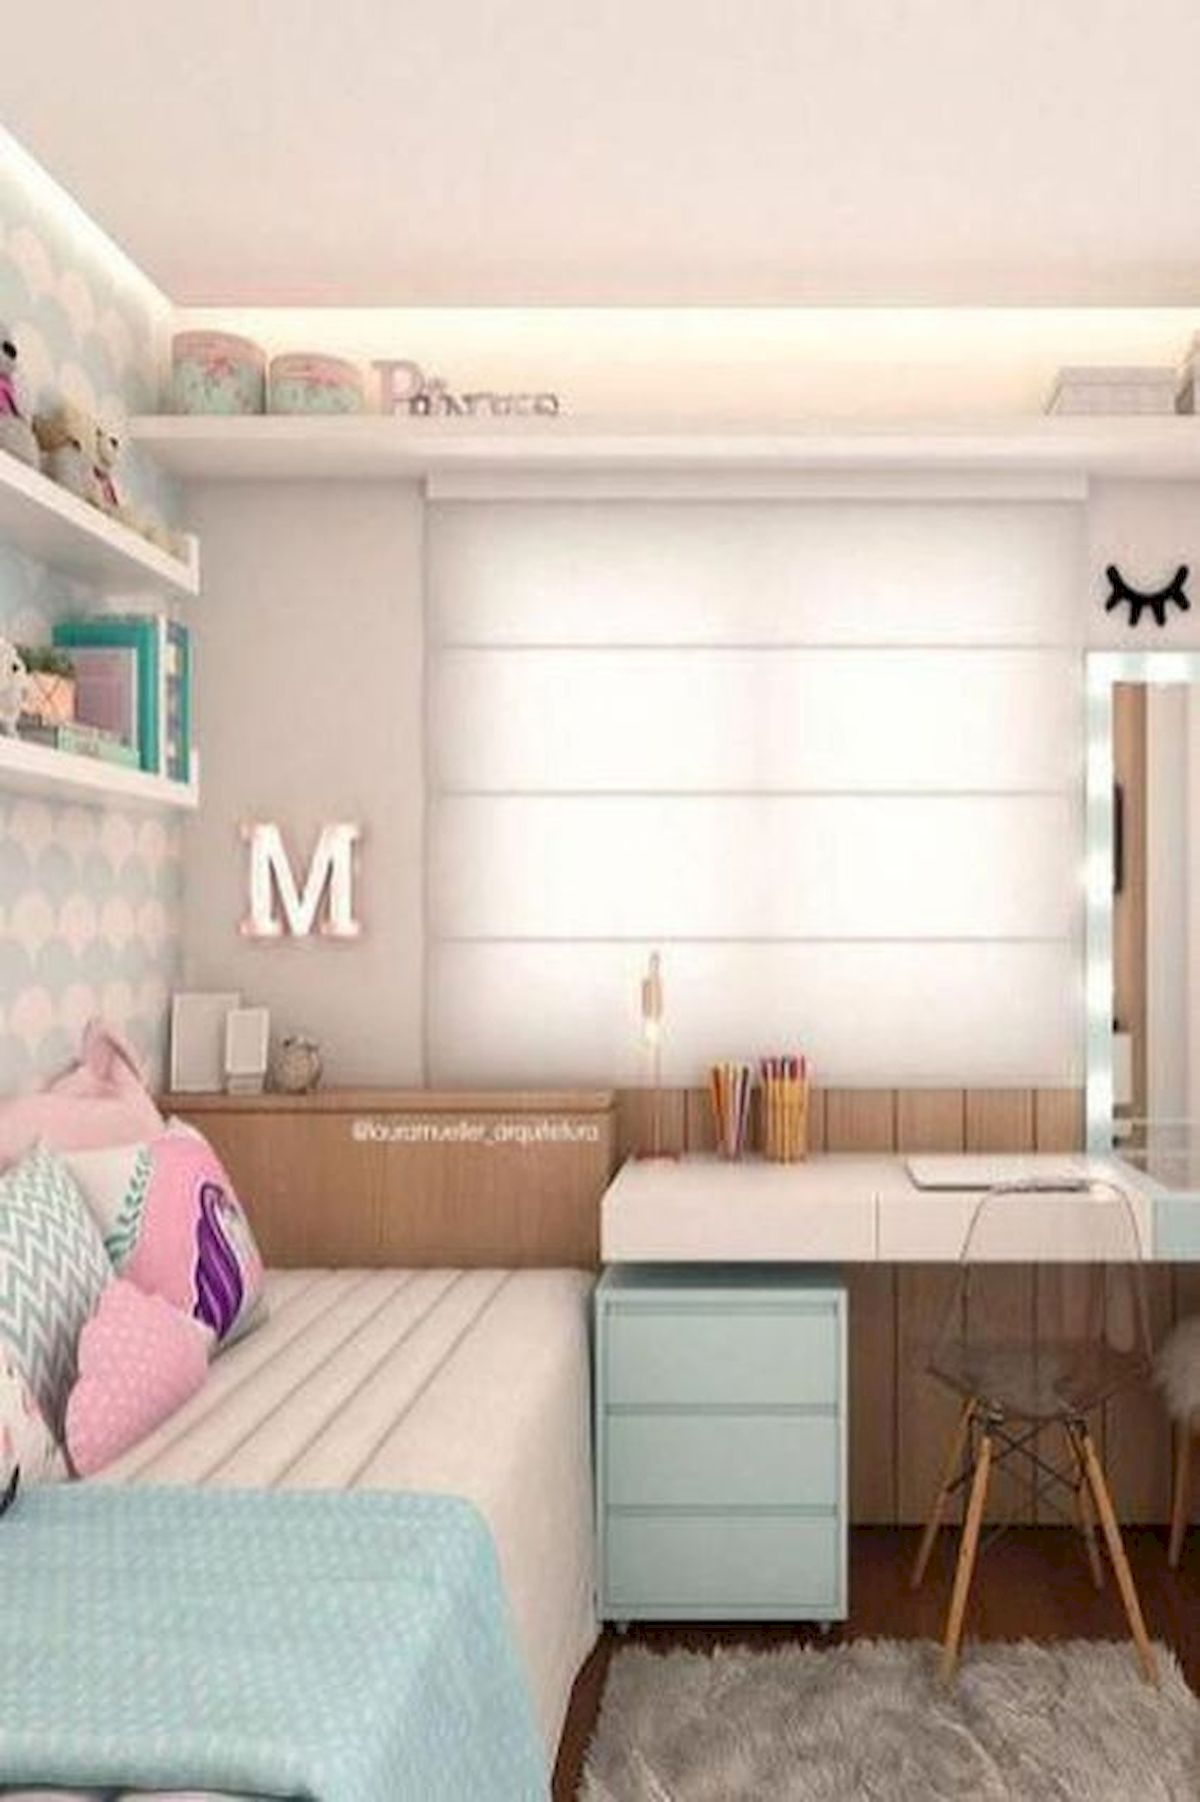 40 Cute Small Bedroom Design and Decor Ideas for Teenage Girl (37)